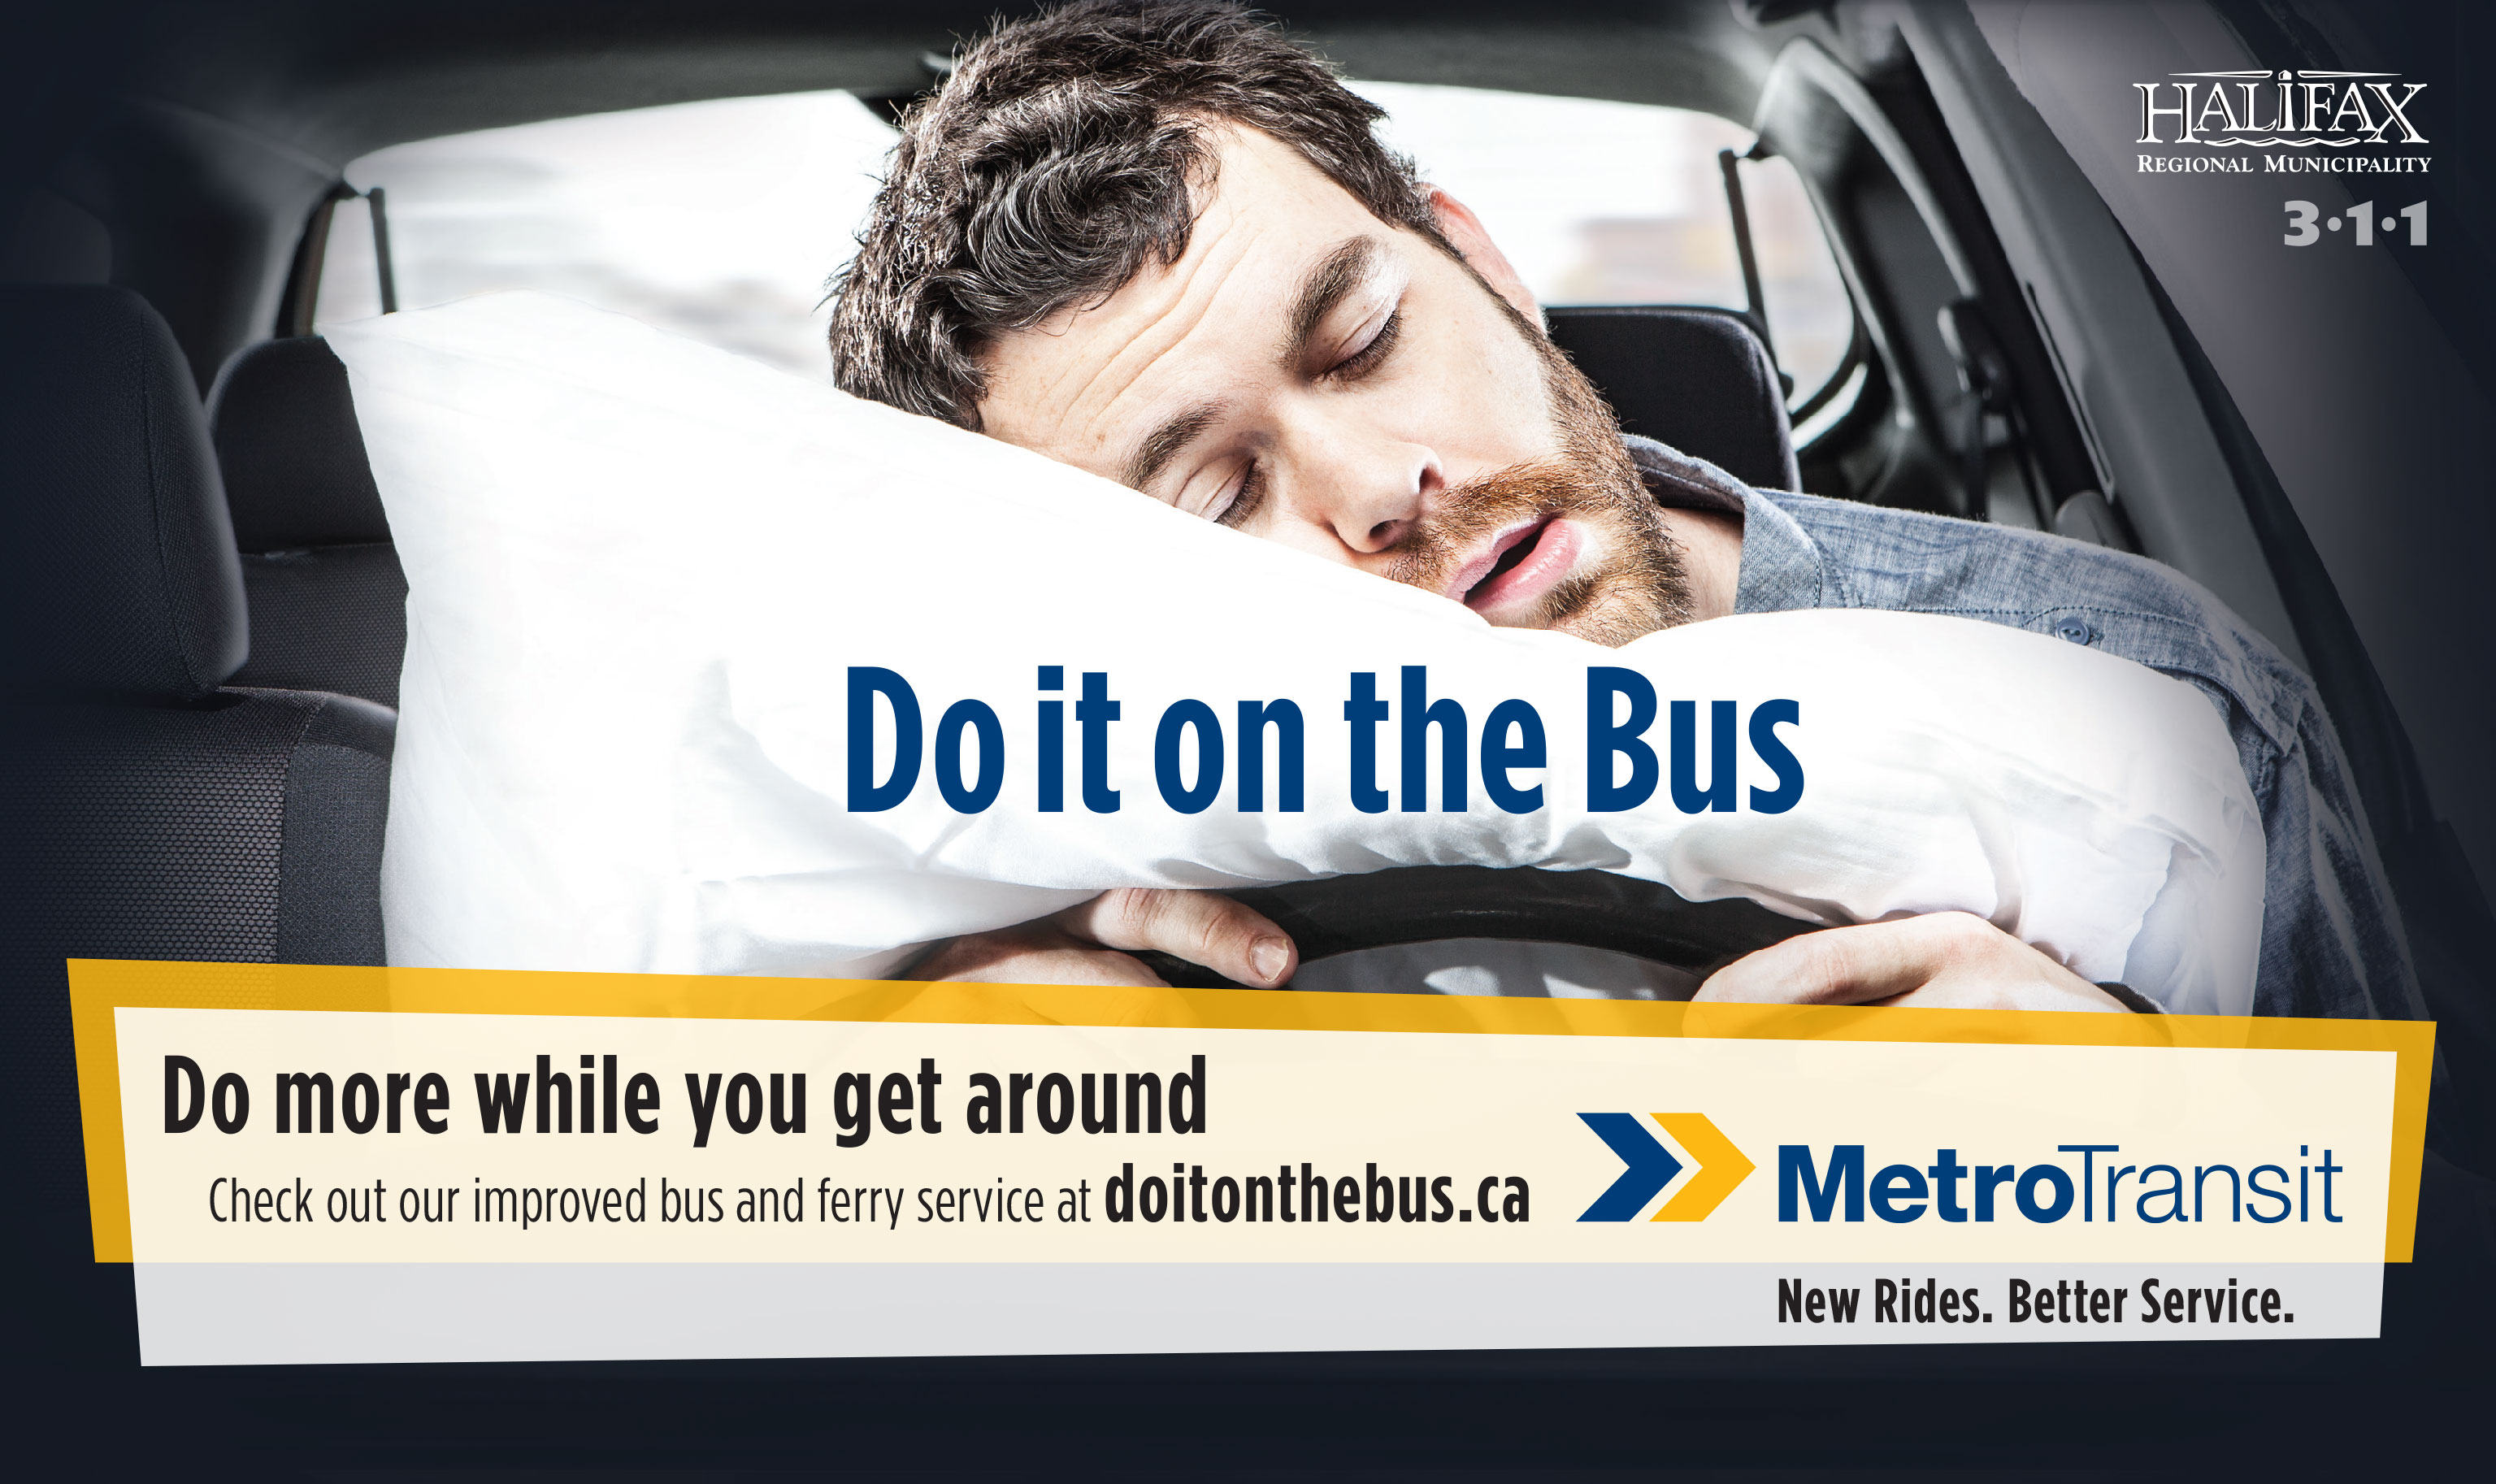 do it on the bus ad - man sleeping behind the wheel